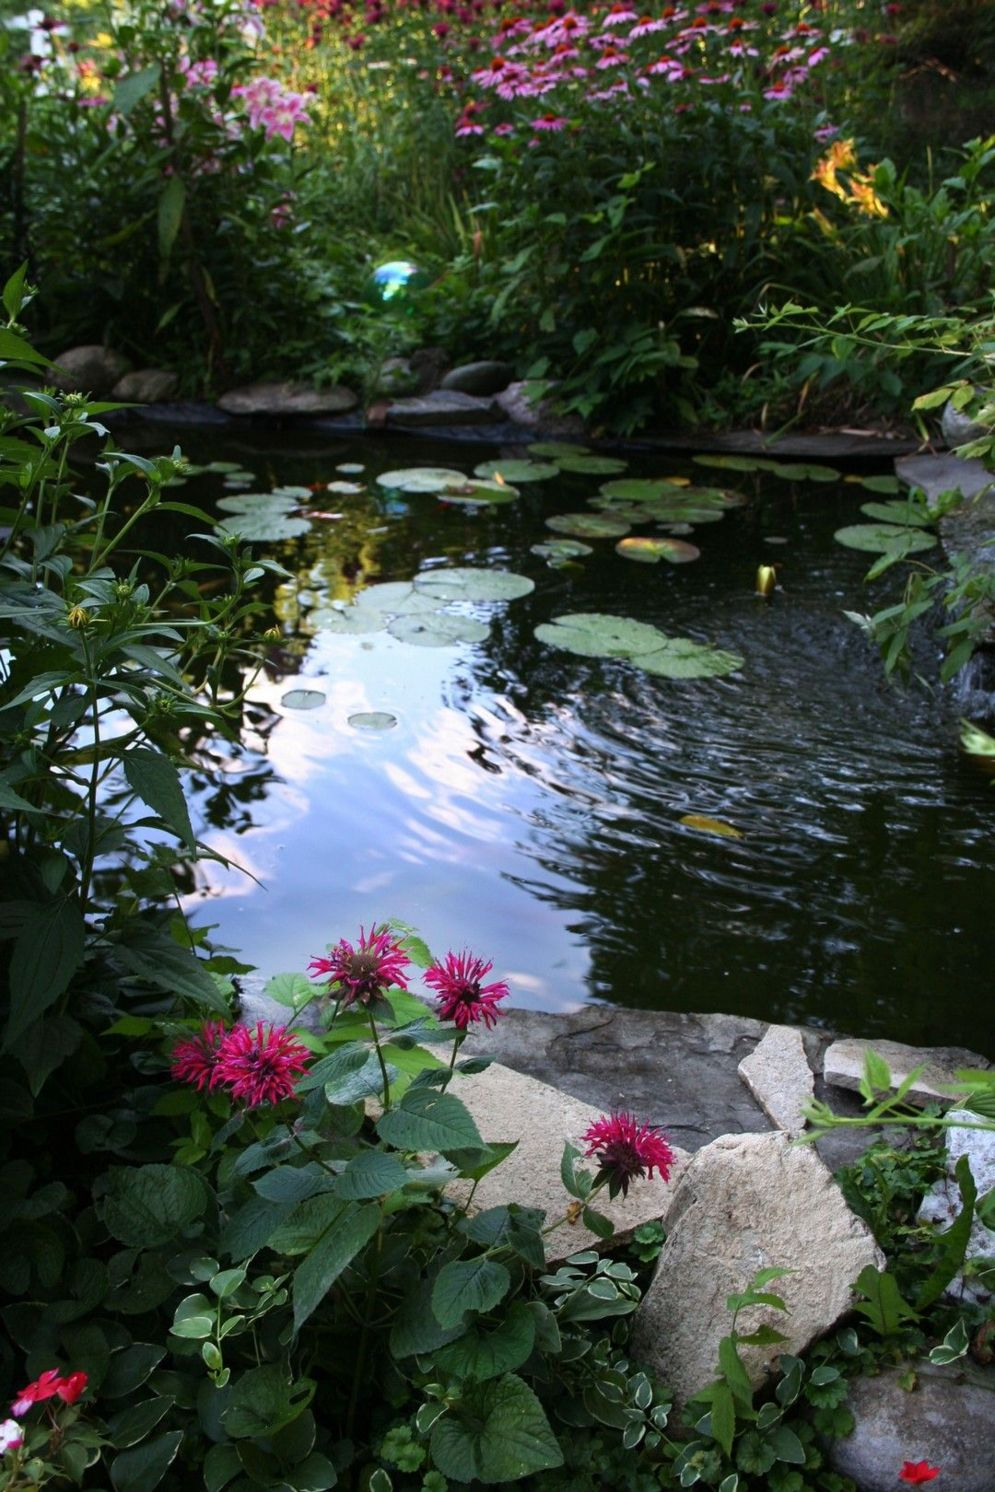 Water garden ideas for more natural backyard feeling with beautiful aquatic plants and ponds Image 34